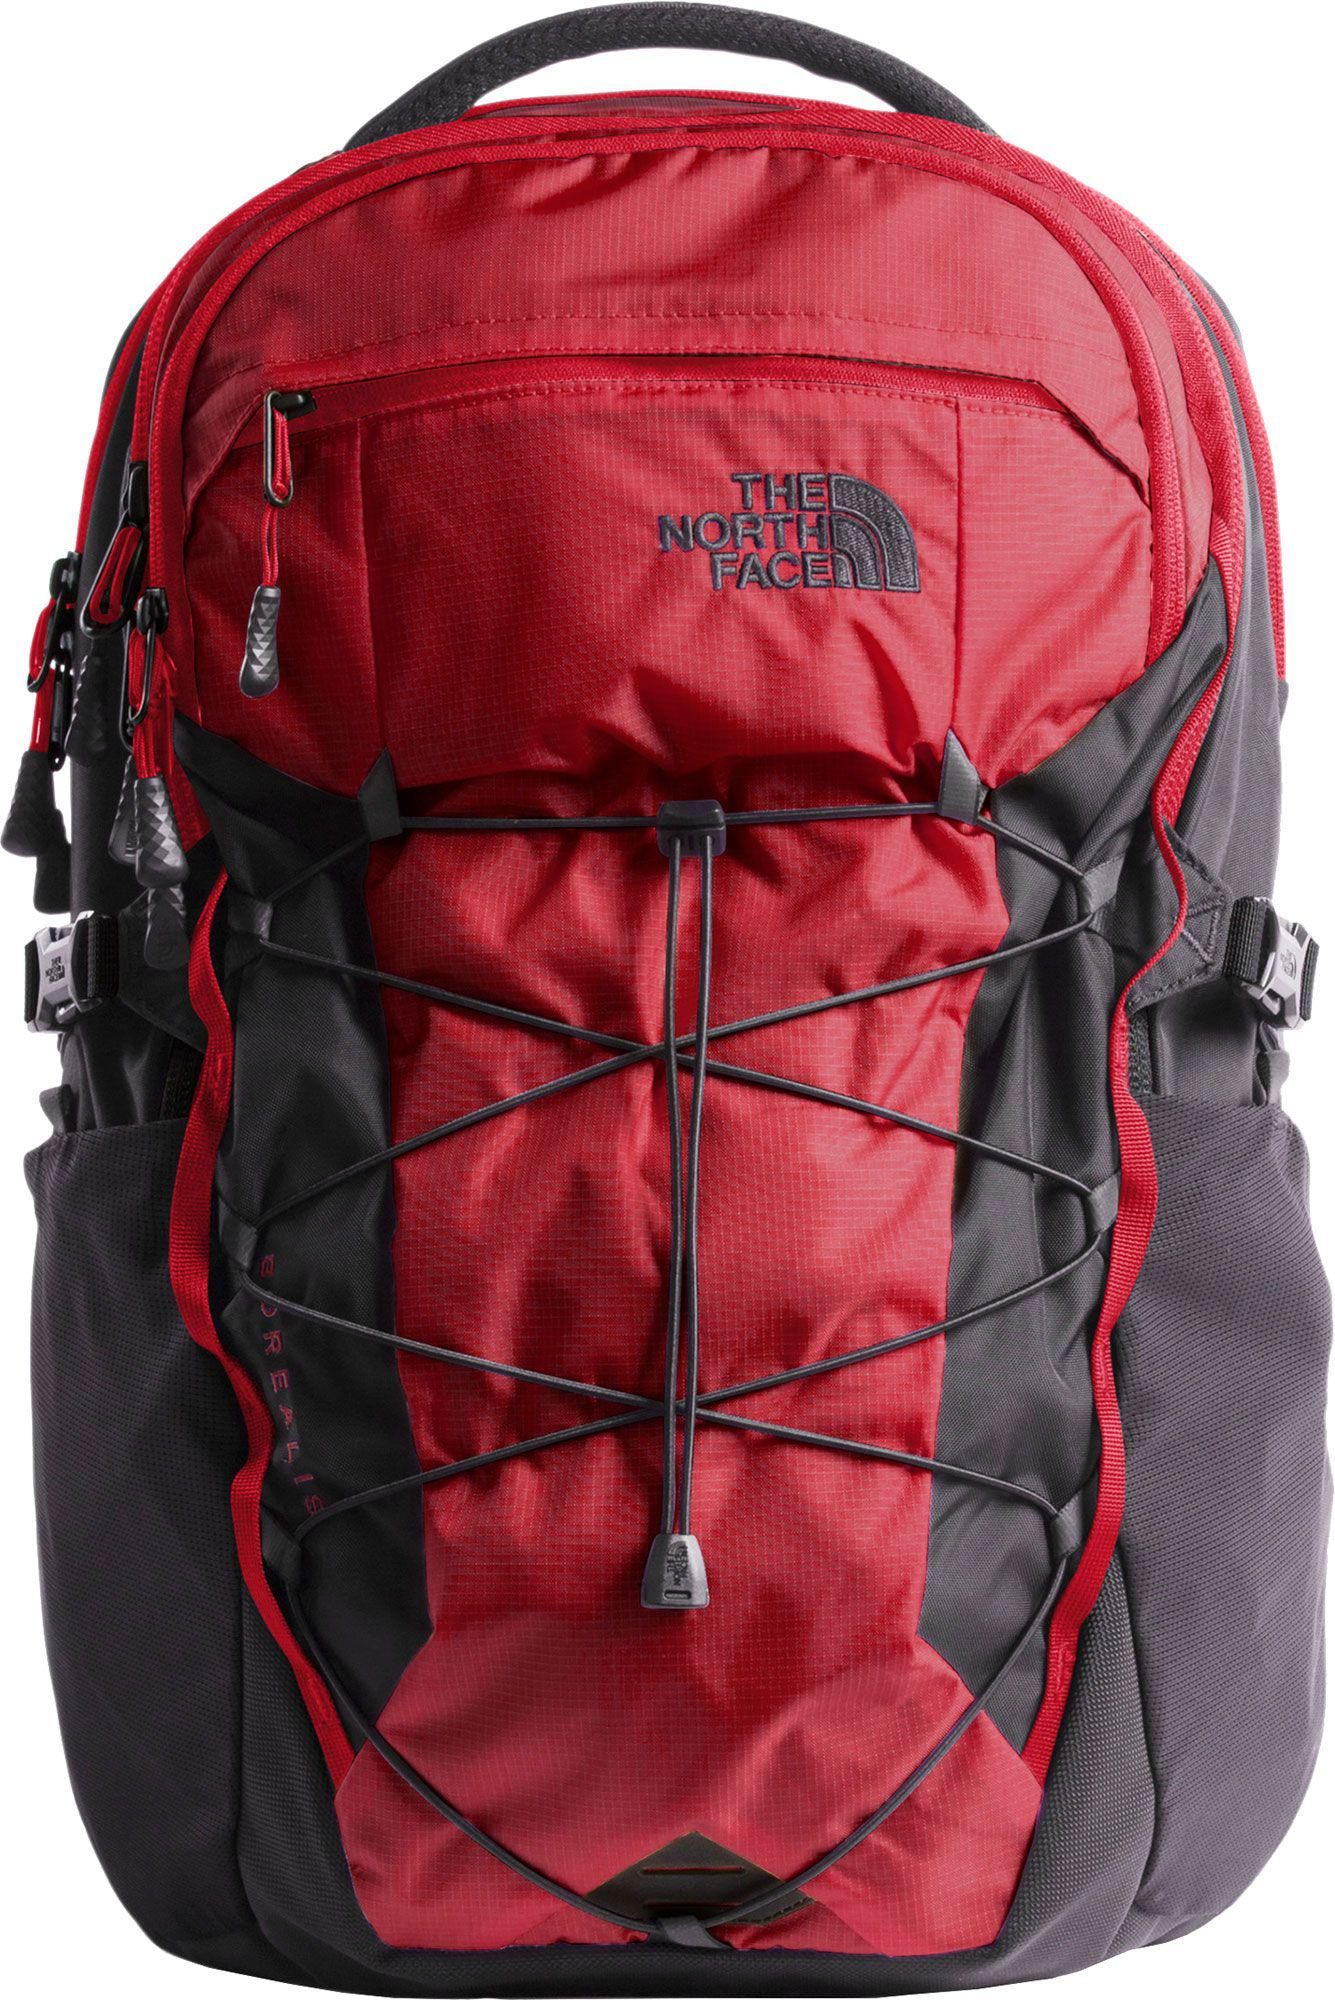 b6f6d6aa07 The North Face - Multicolor Orealis 18 Backpack for Men - Lyst